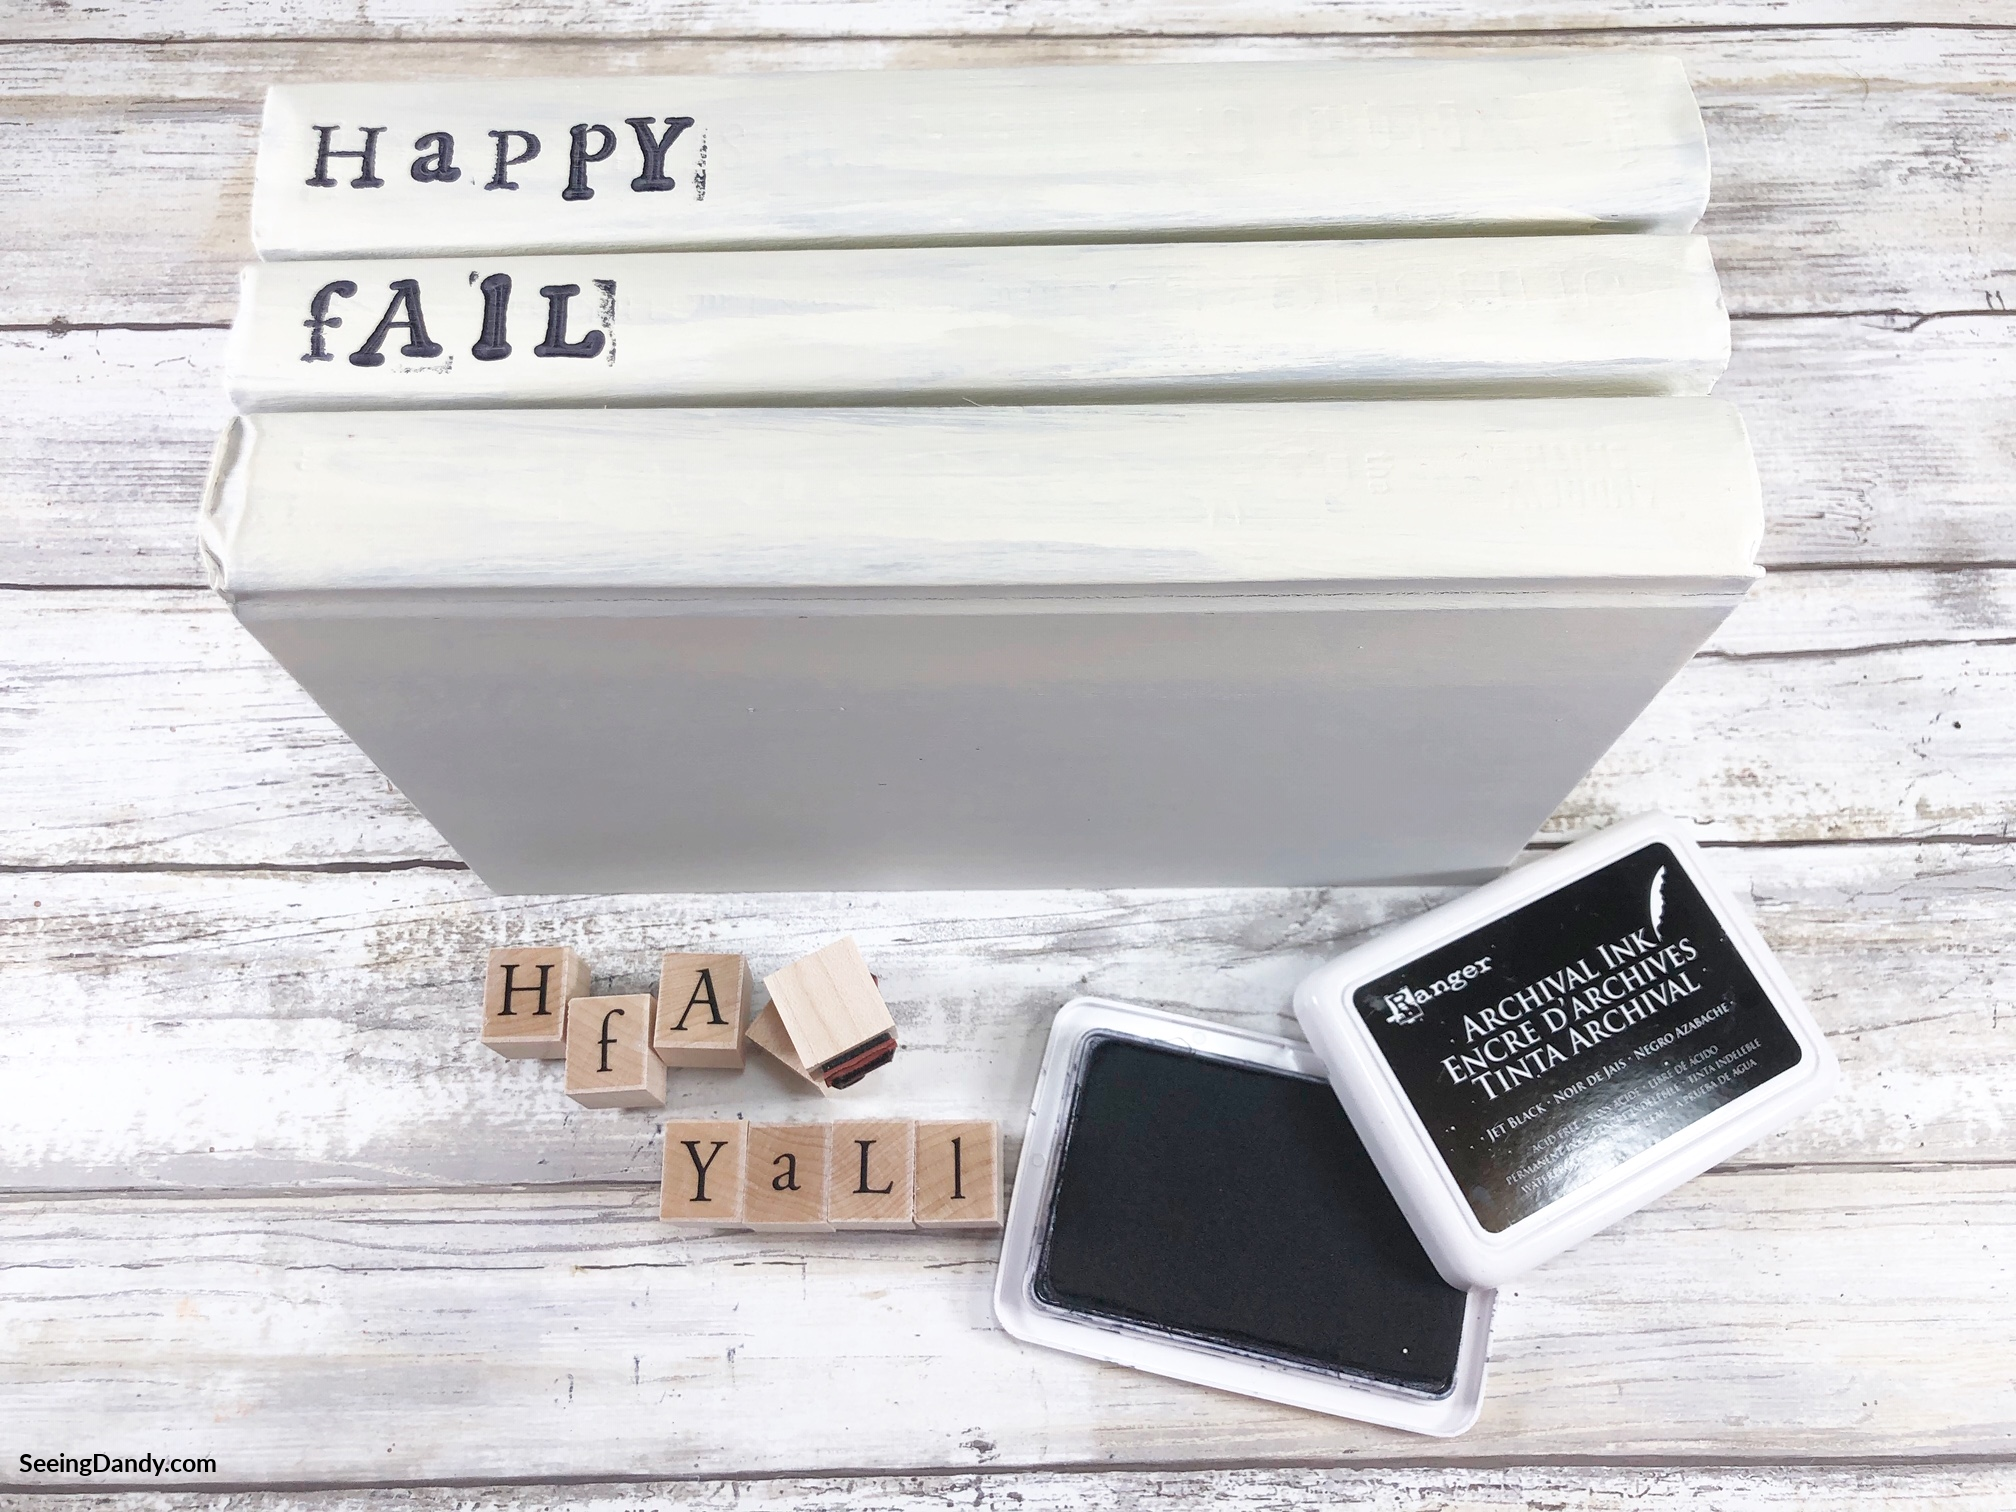 wooden stamps, diy book stack, fall decor, white book stack, happy fall, black ink pad